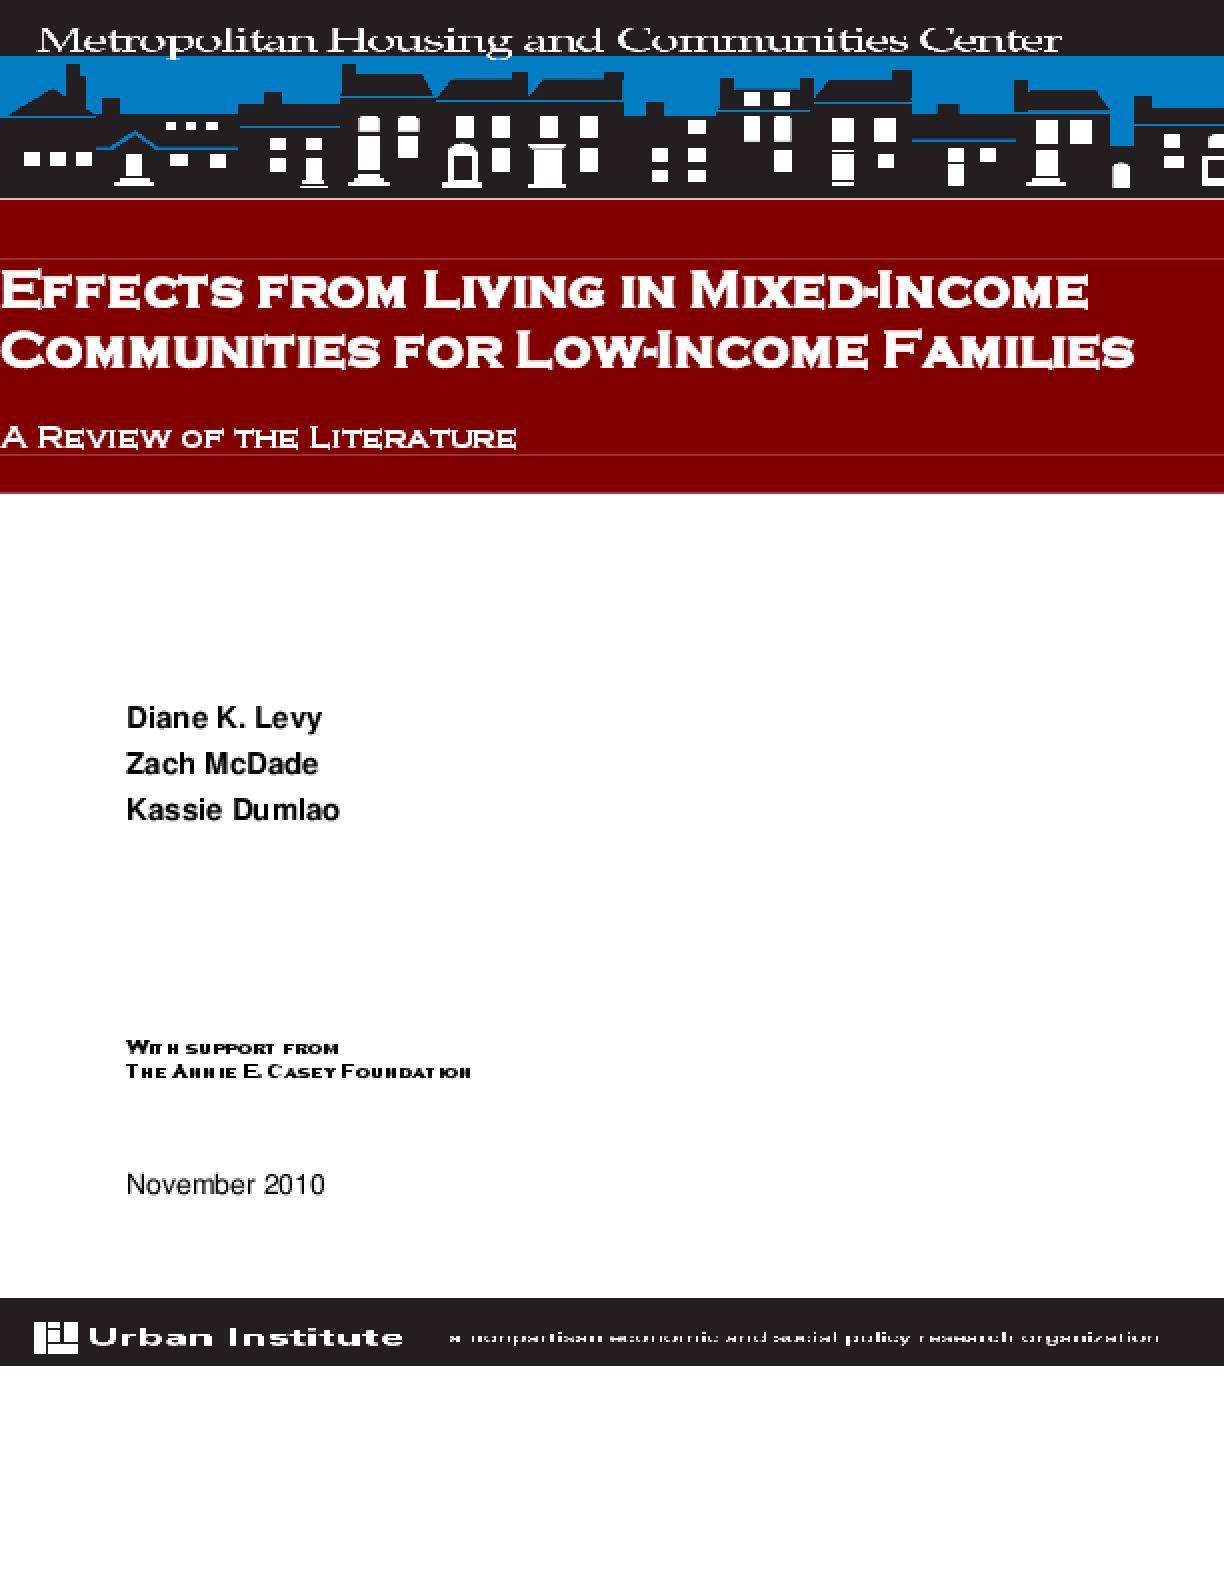 Effects From Living in Mixed-Income Communities for Low-Income Families: A Review of the Literature